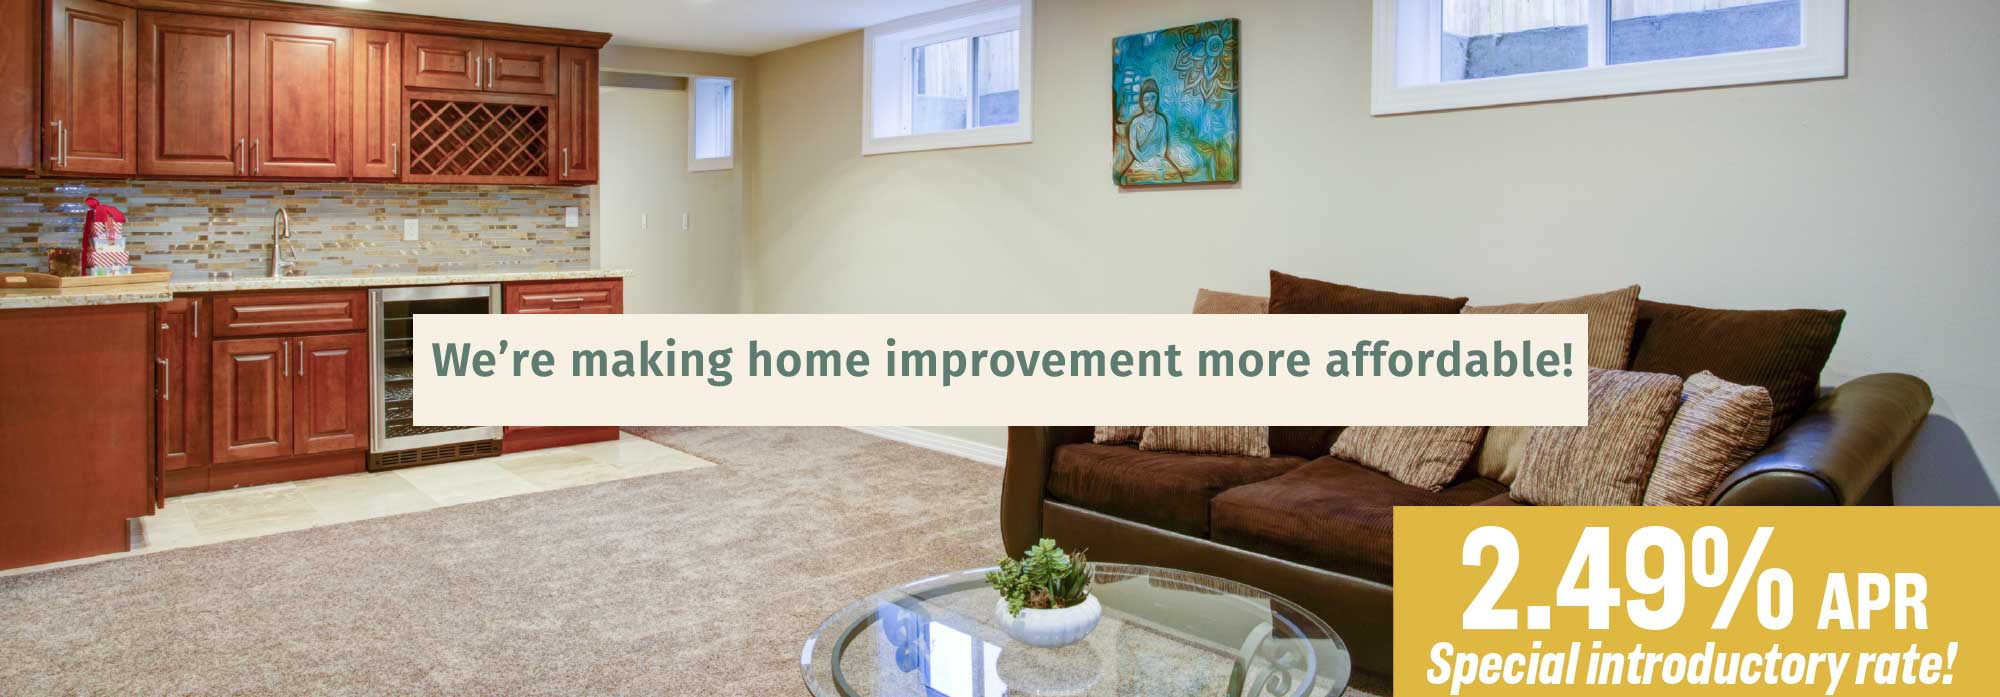 We're making home improvement more affordable!